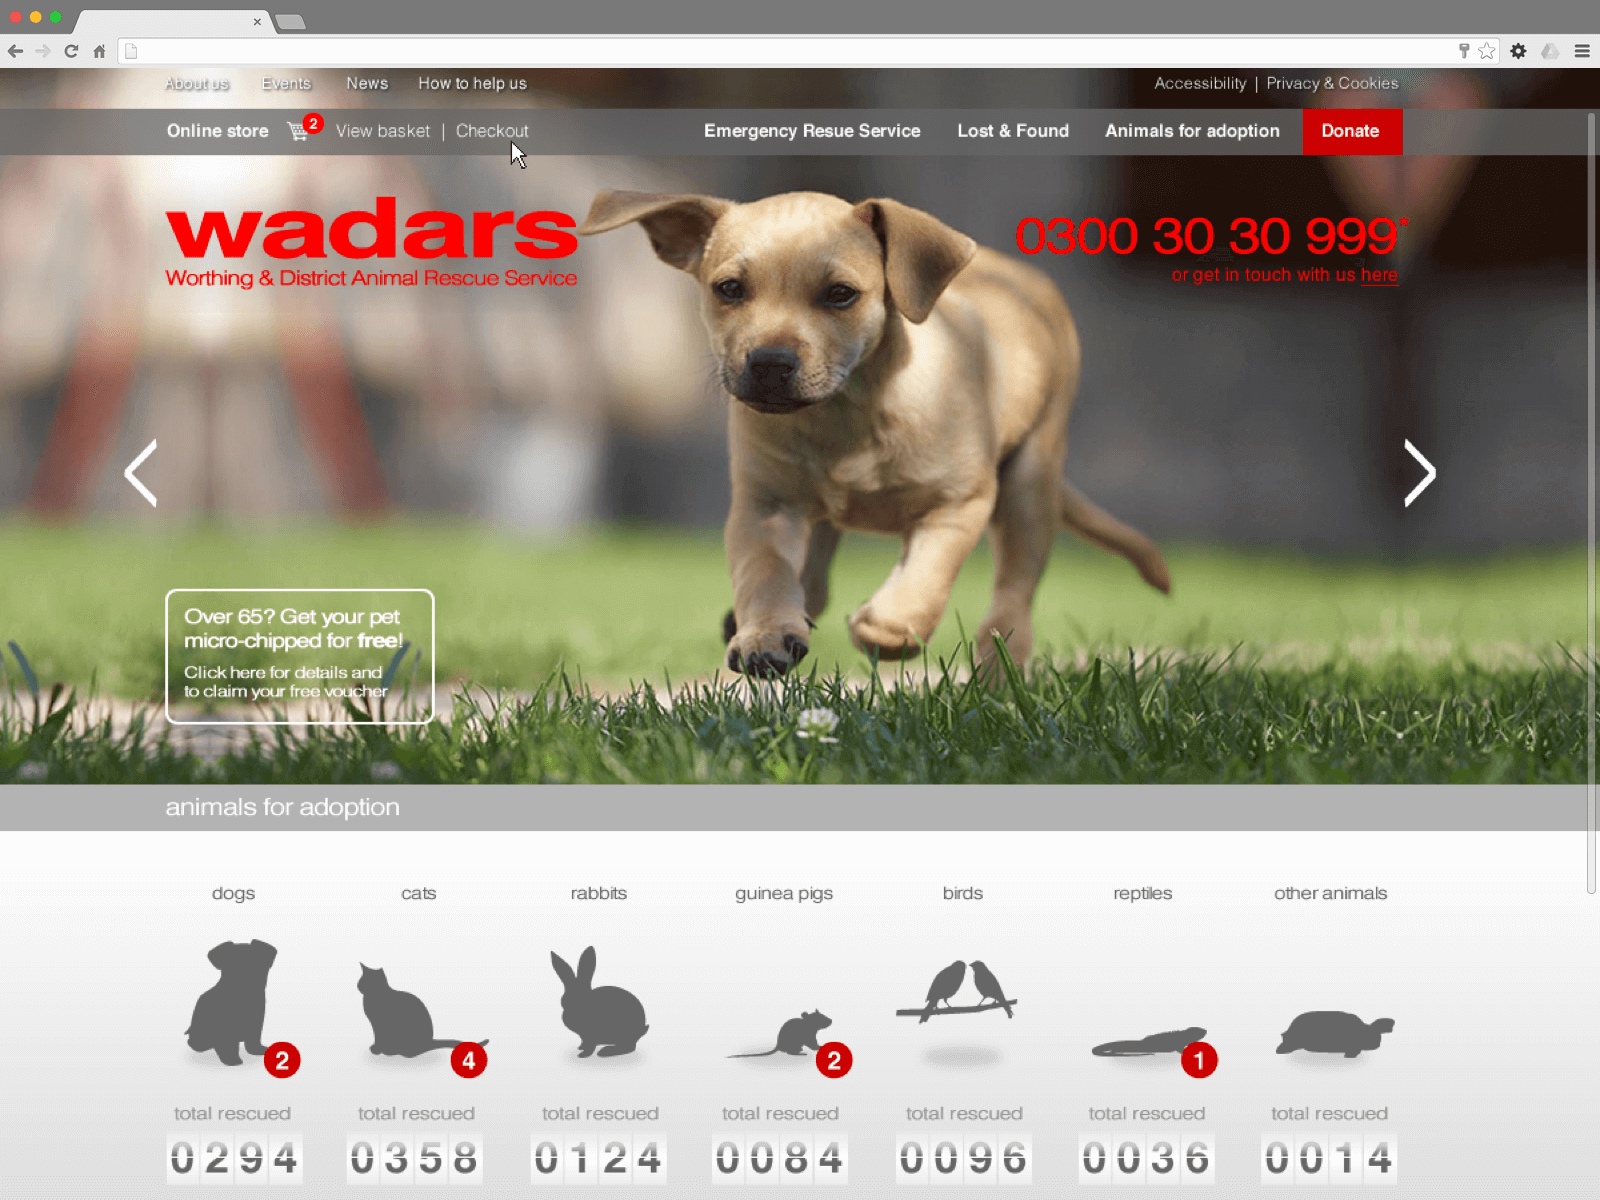 WADARS website (Website on desktop)